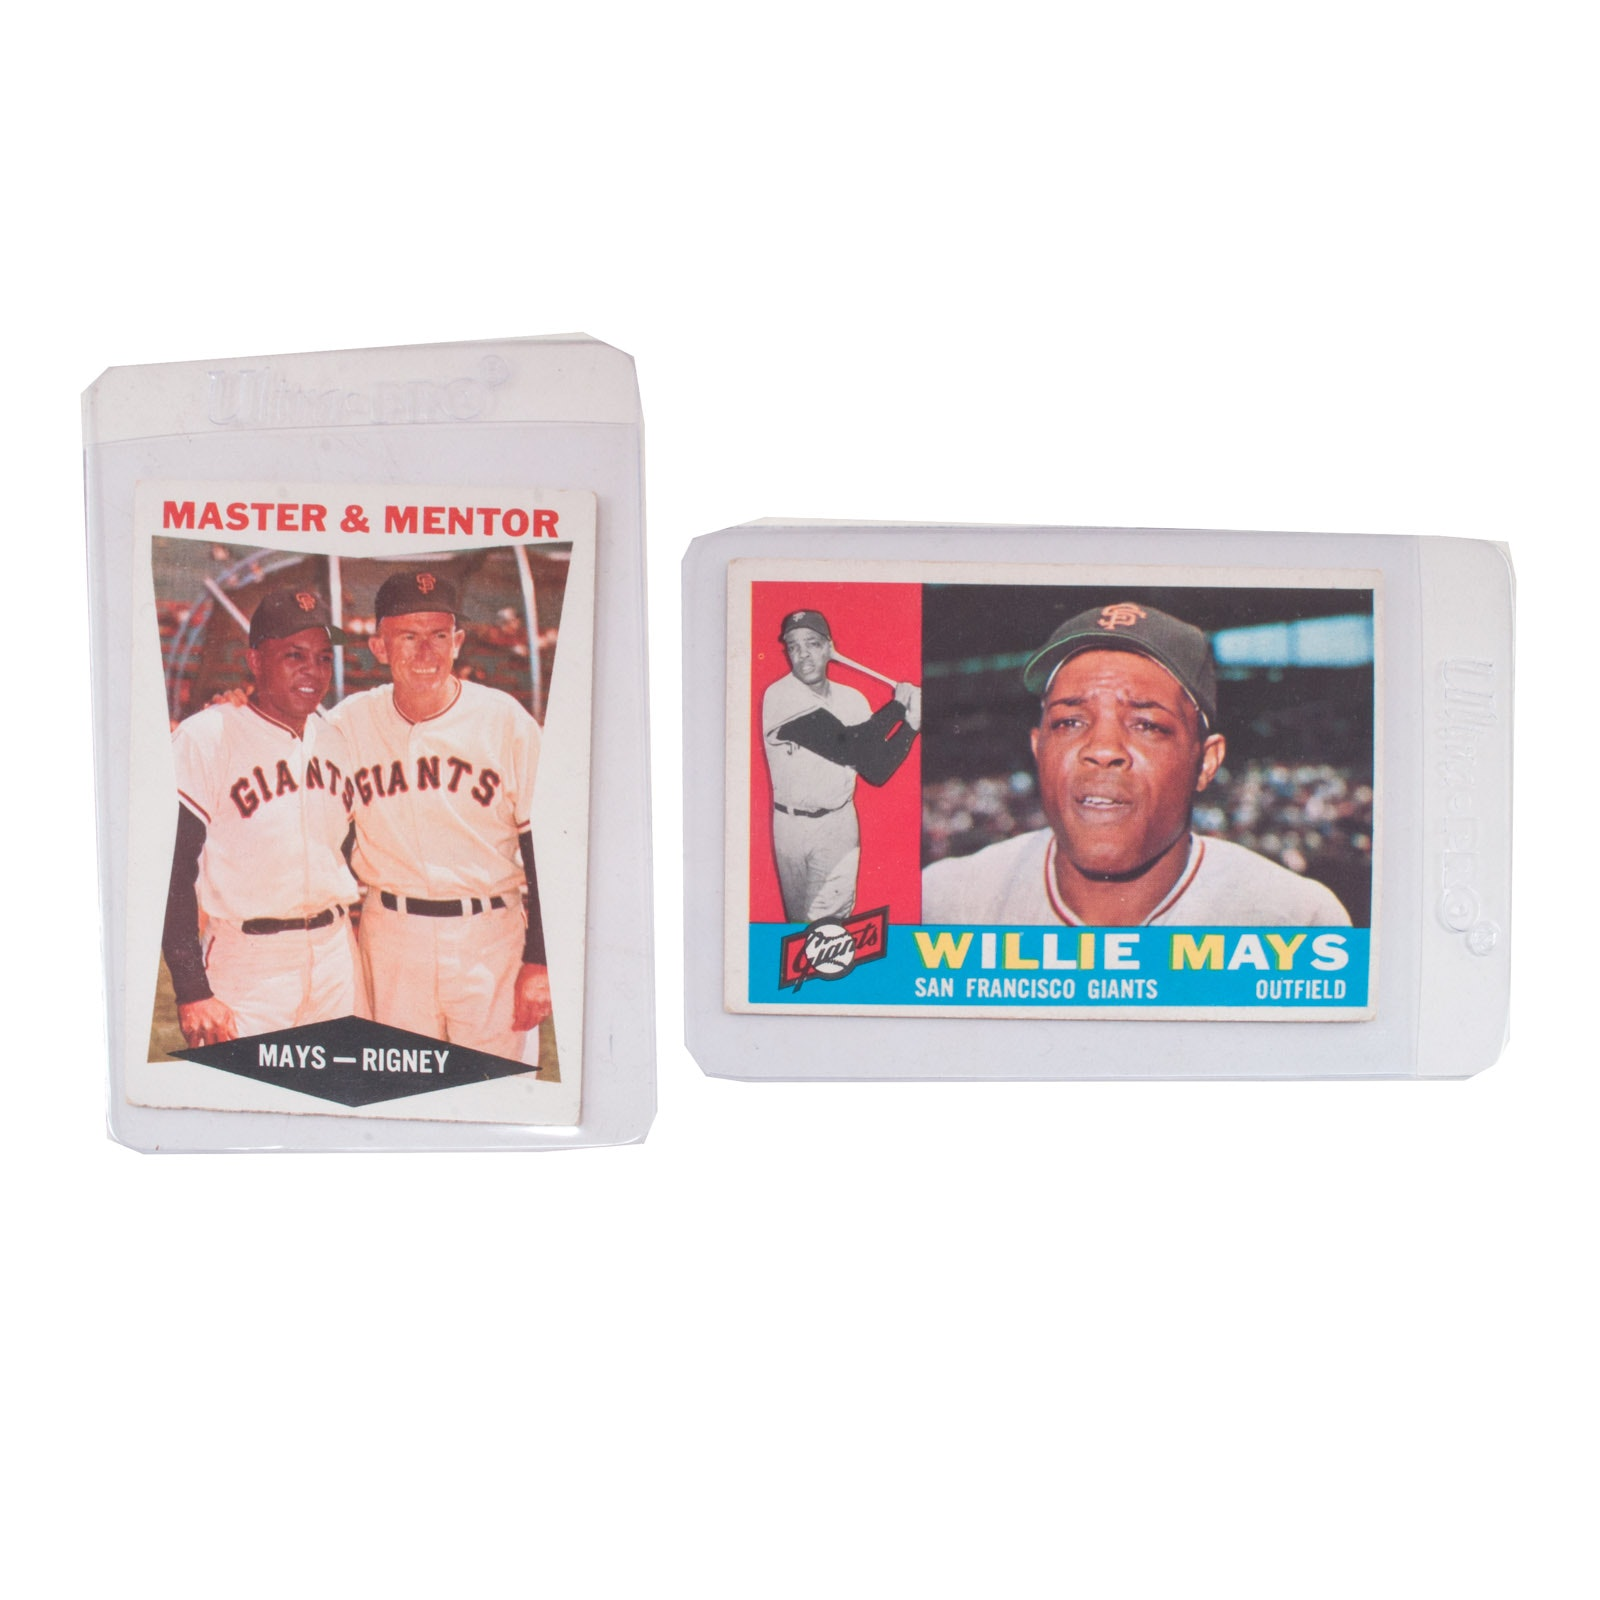 1960 Willie Mays Topps Baseball Cards